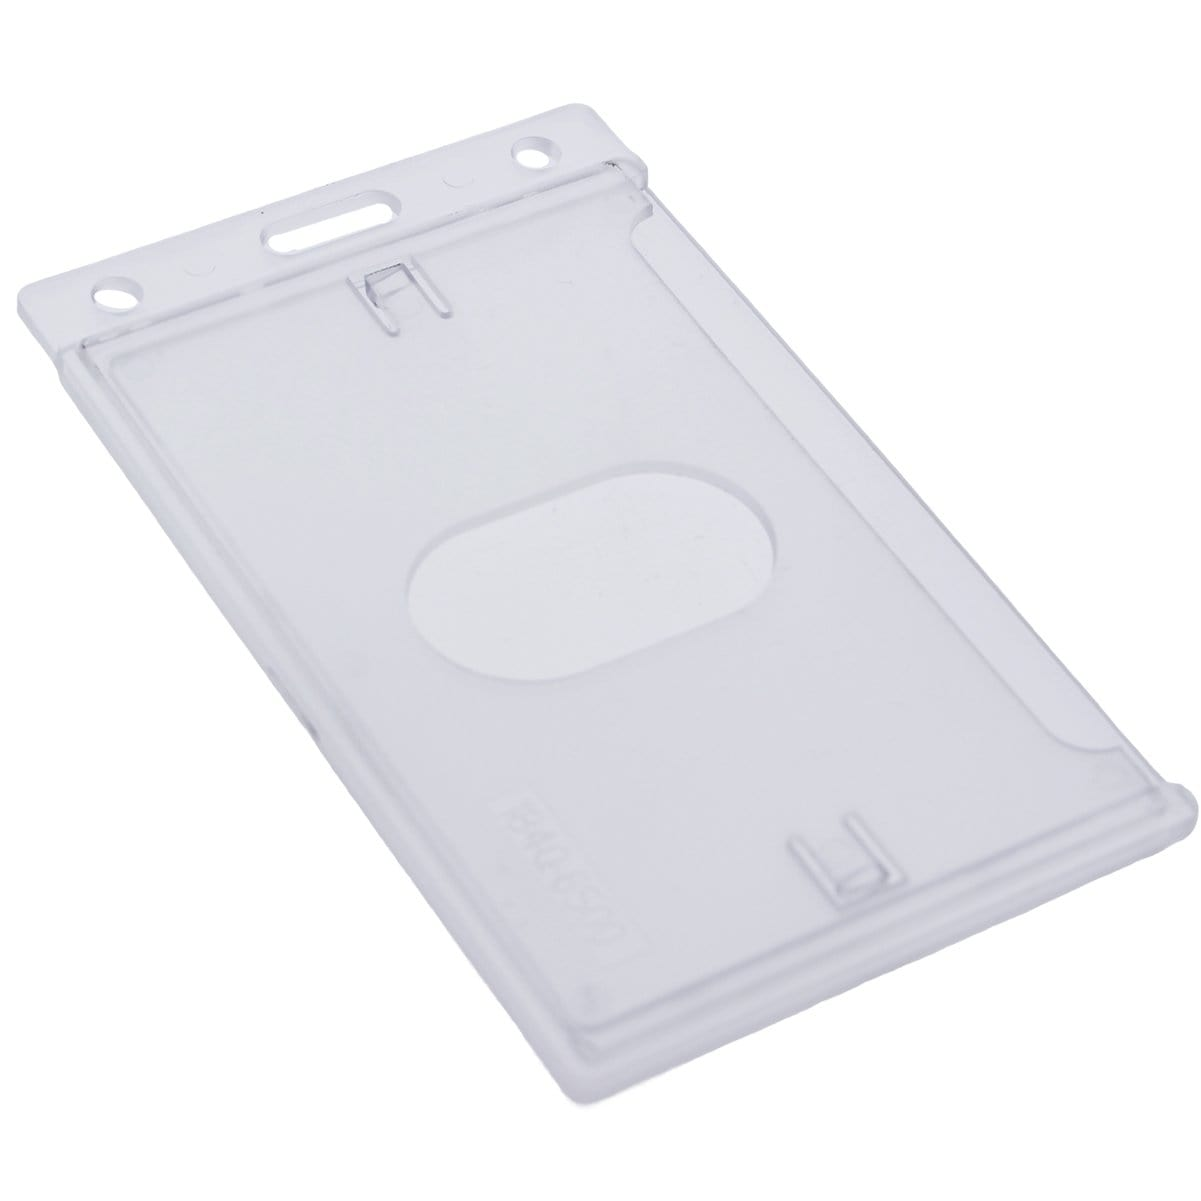 Frosted Vertical Rigid Plastic Card Holder (P/N 1840-6500)